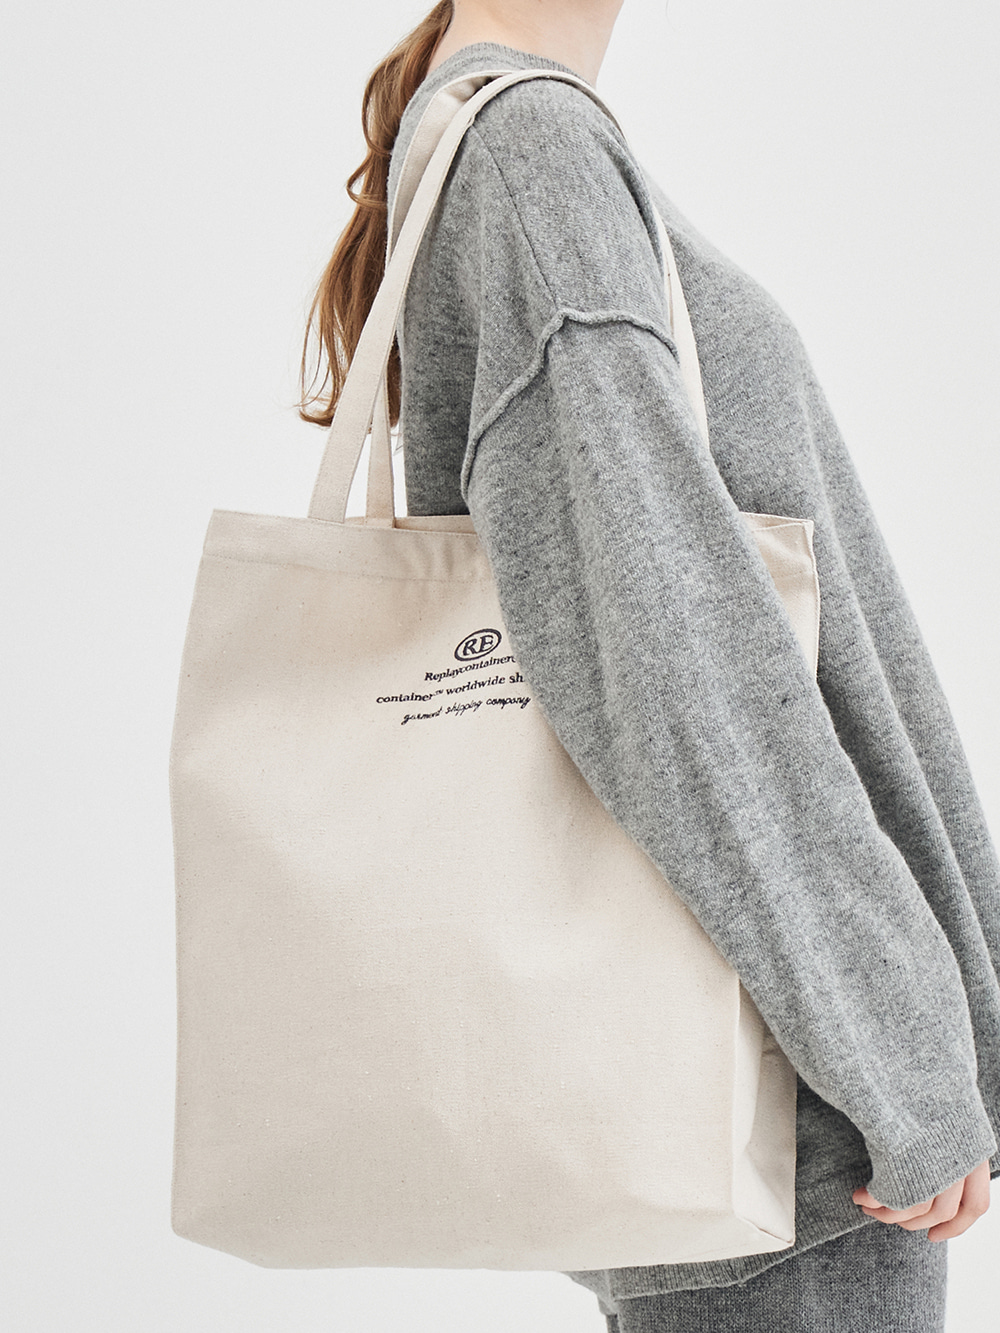 RC worldwide eco bag (oatmeal) [10/28 delivery]